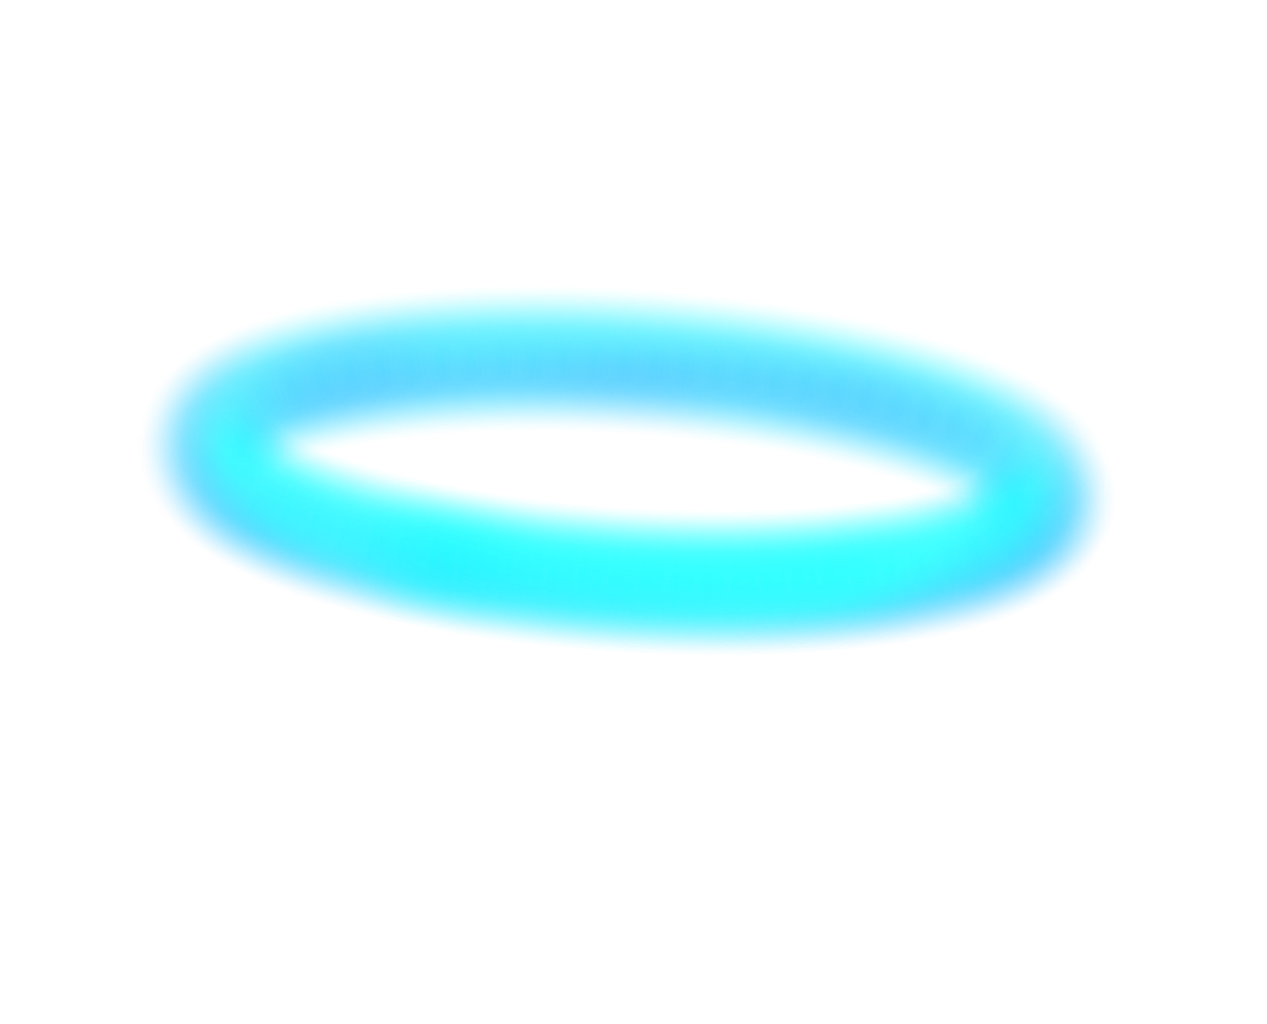 Glowing angel halo png. Angels aesthetic circle ring